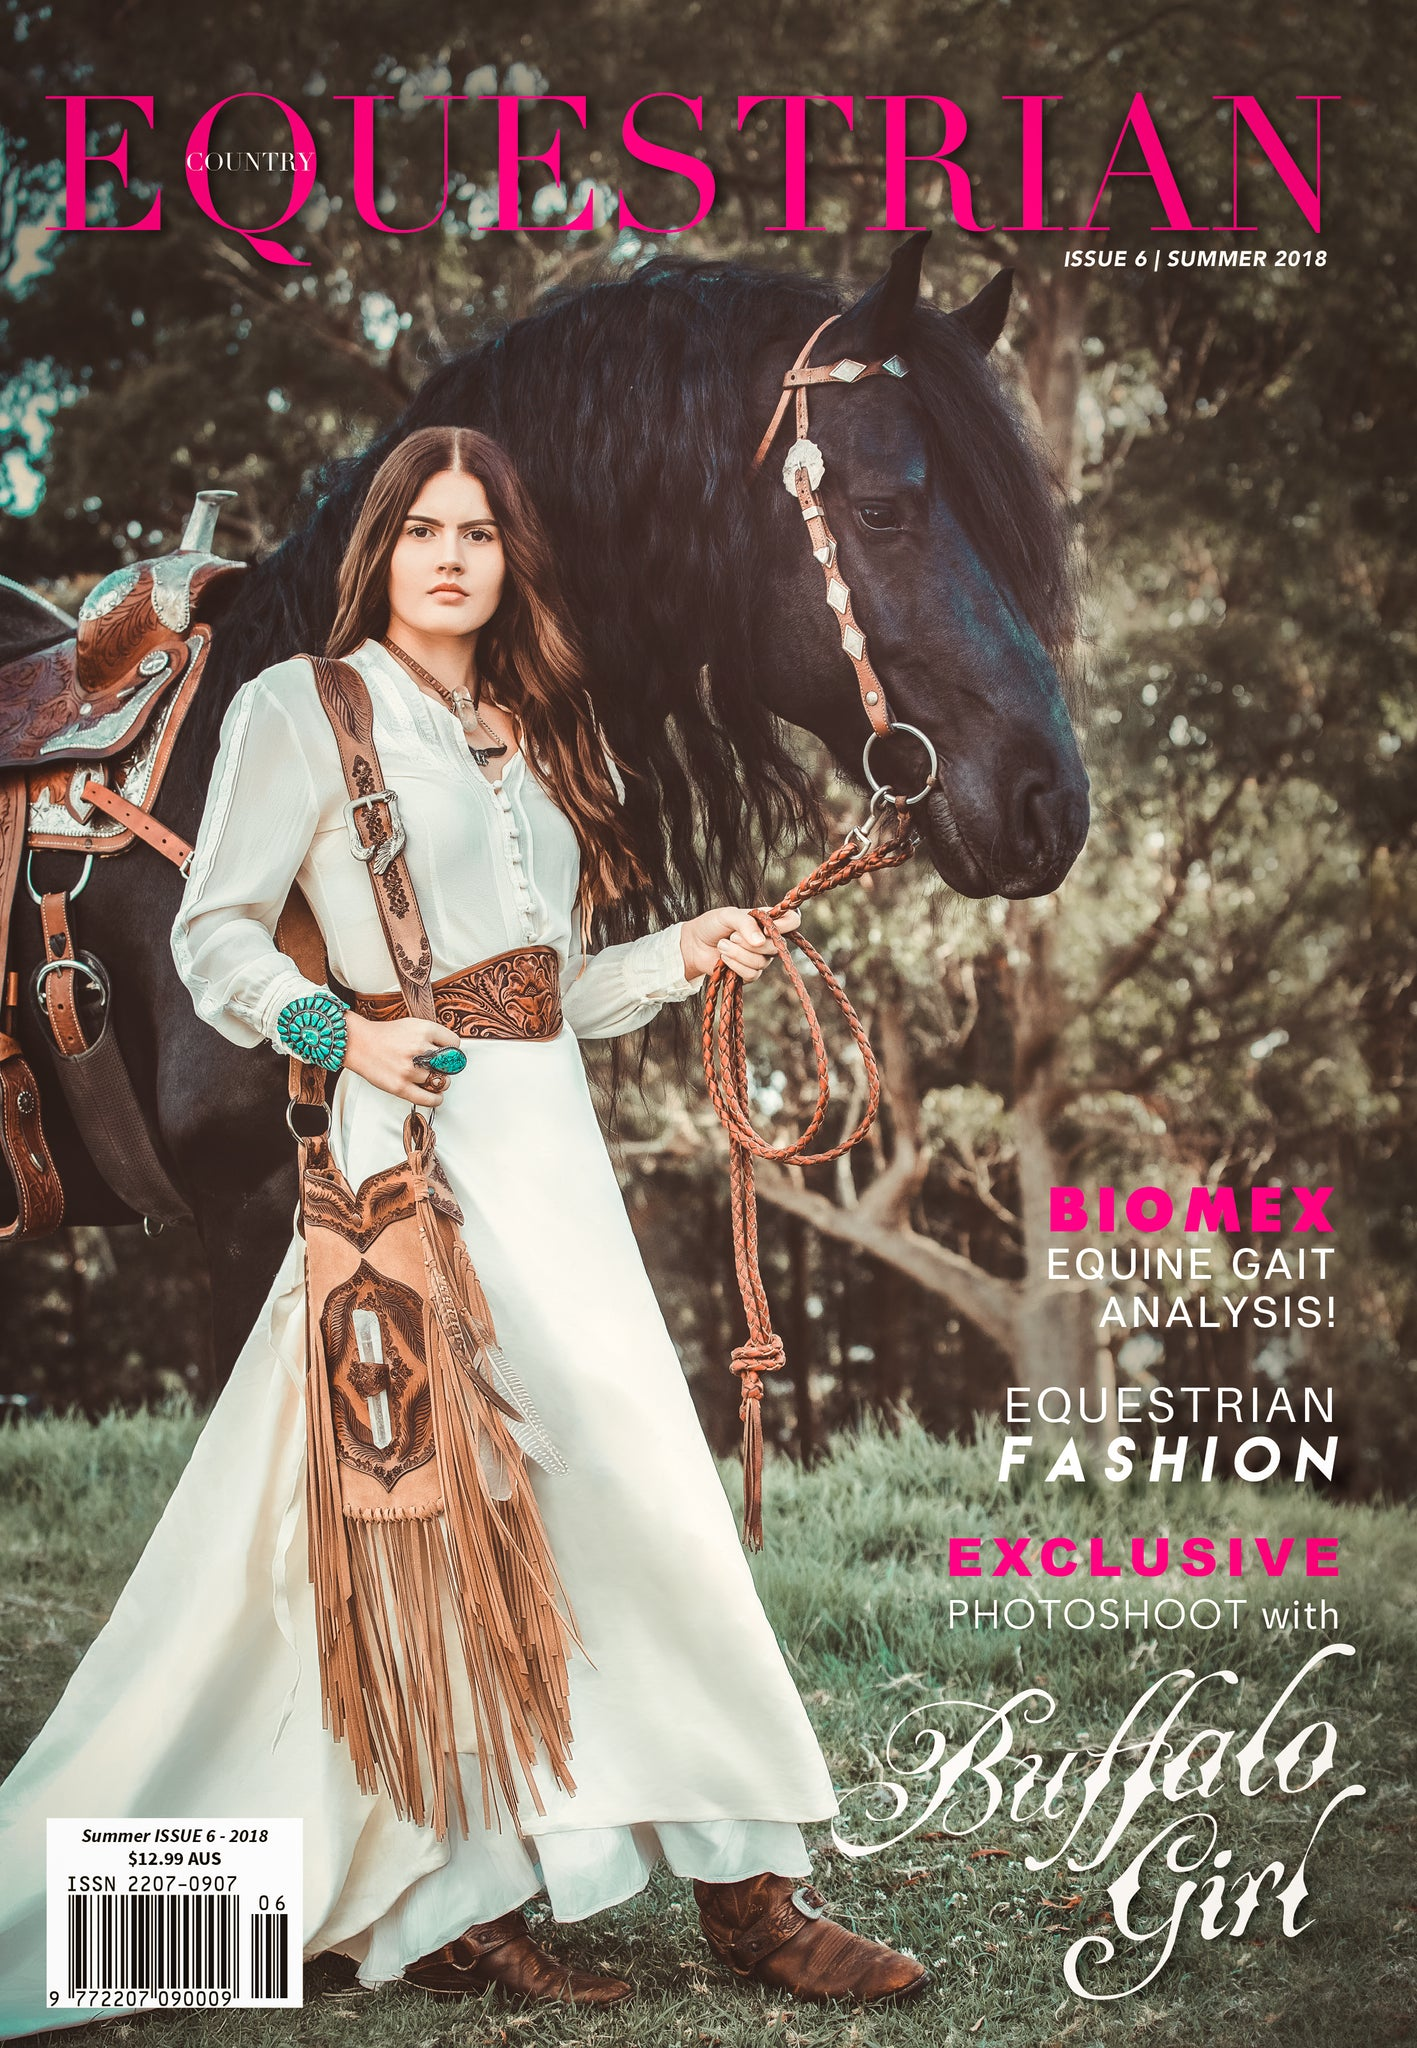 Equestrian Country Magazine Buffalo Girl